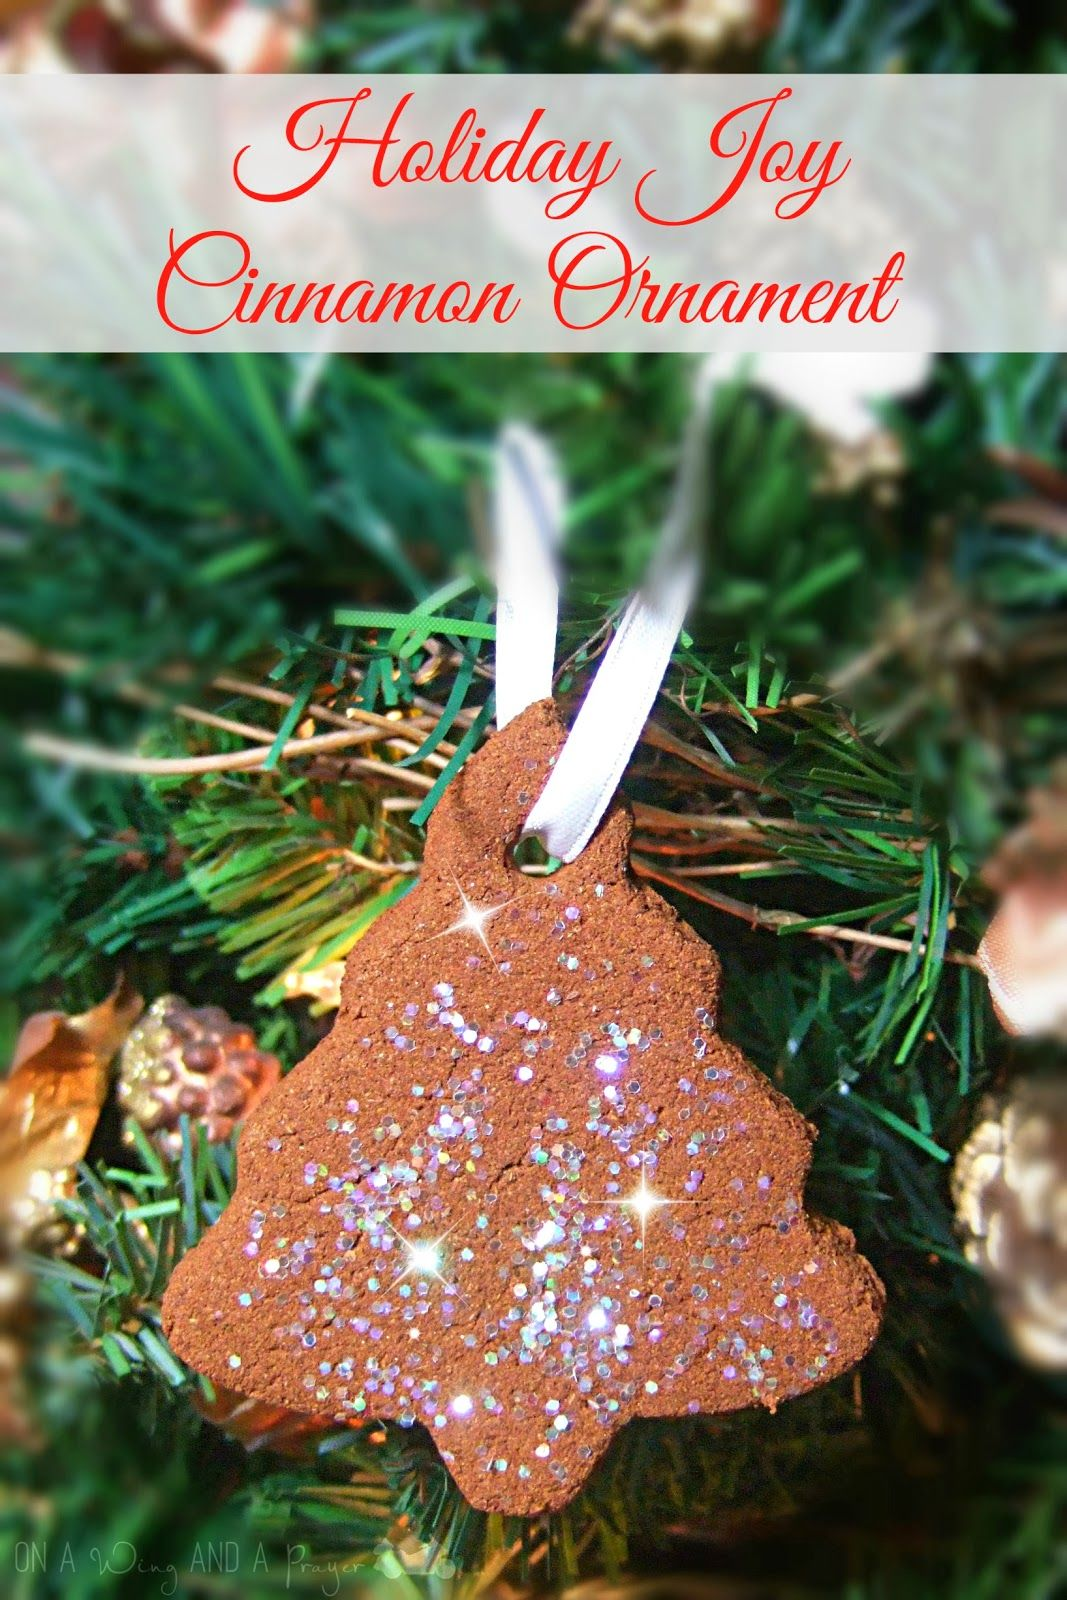 On A Wing And A Prayer  Holiday Joy Cinnamon Ornament  Crafting